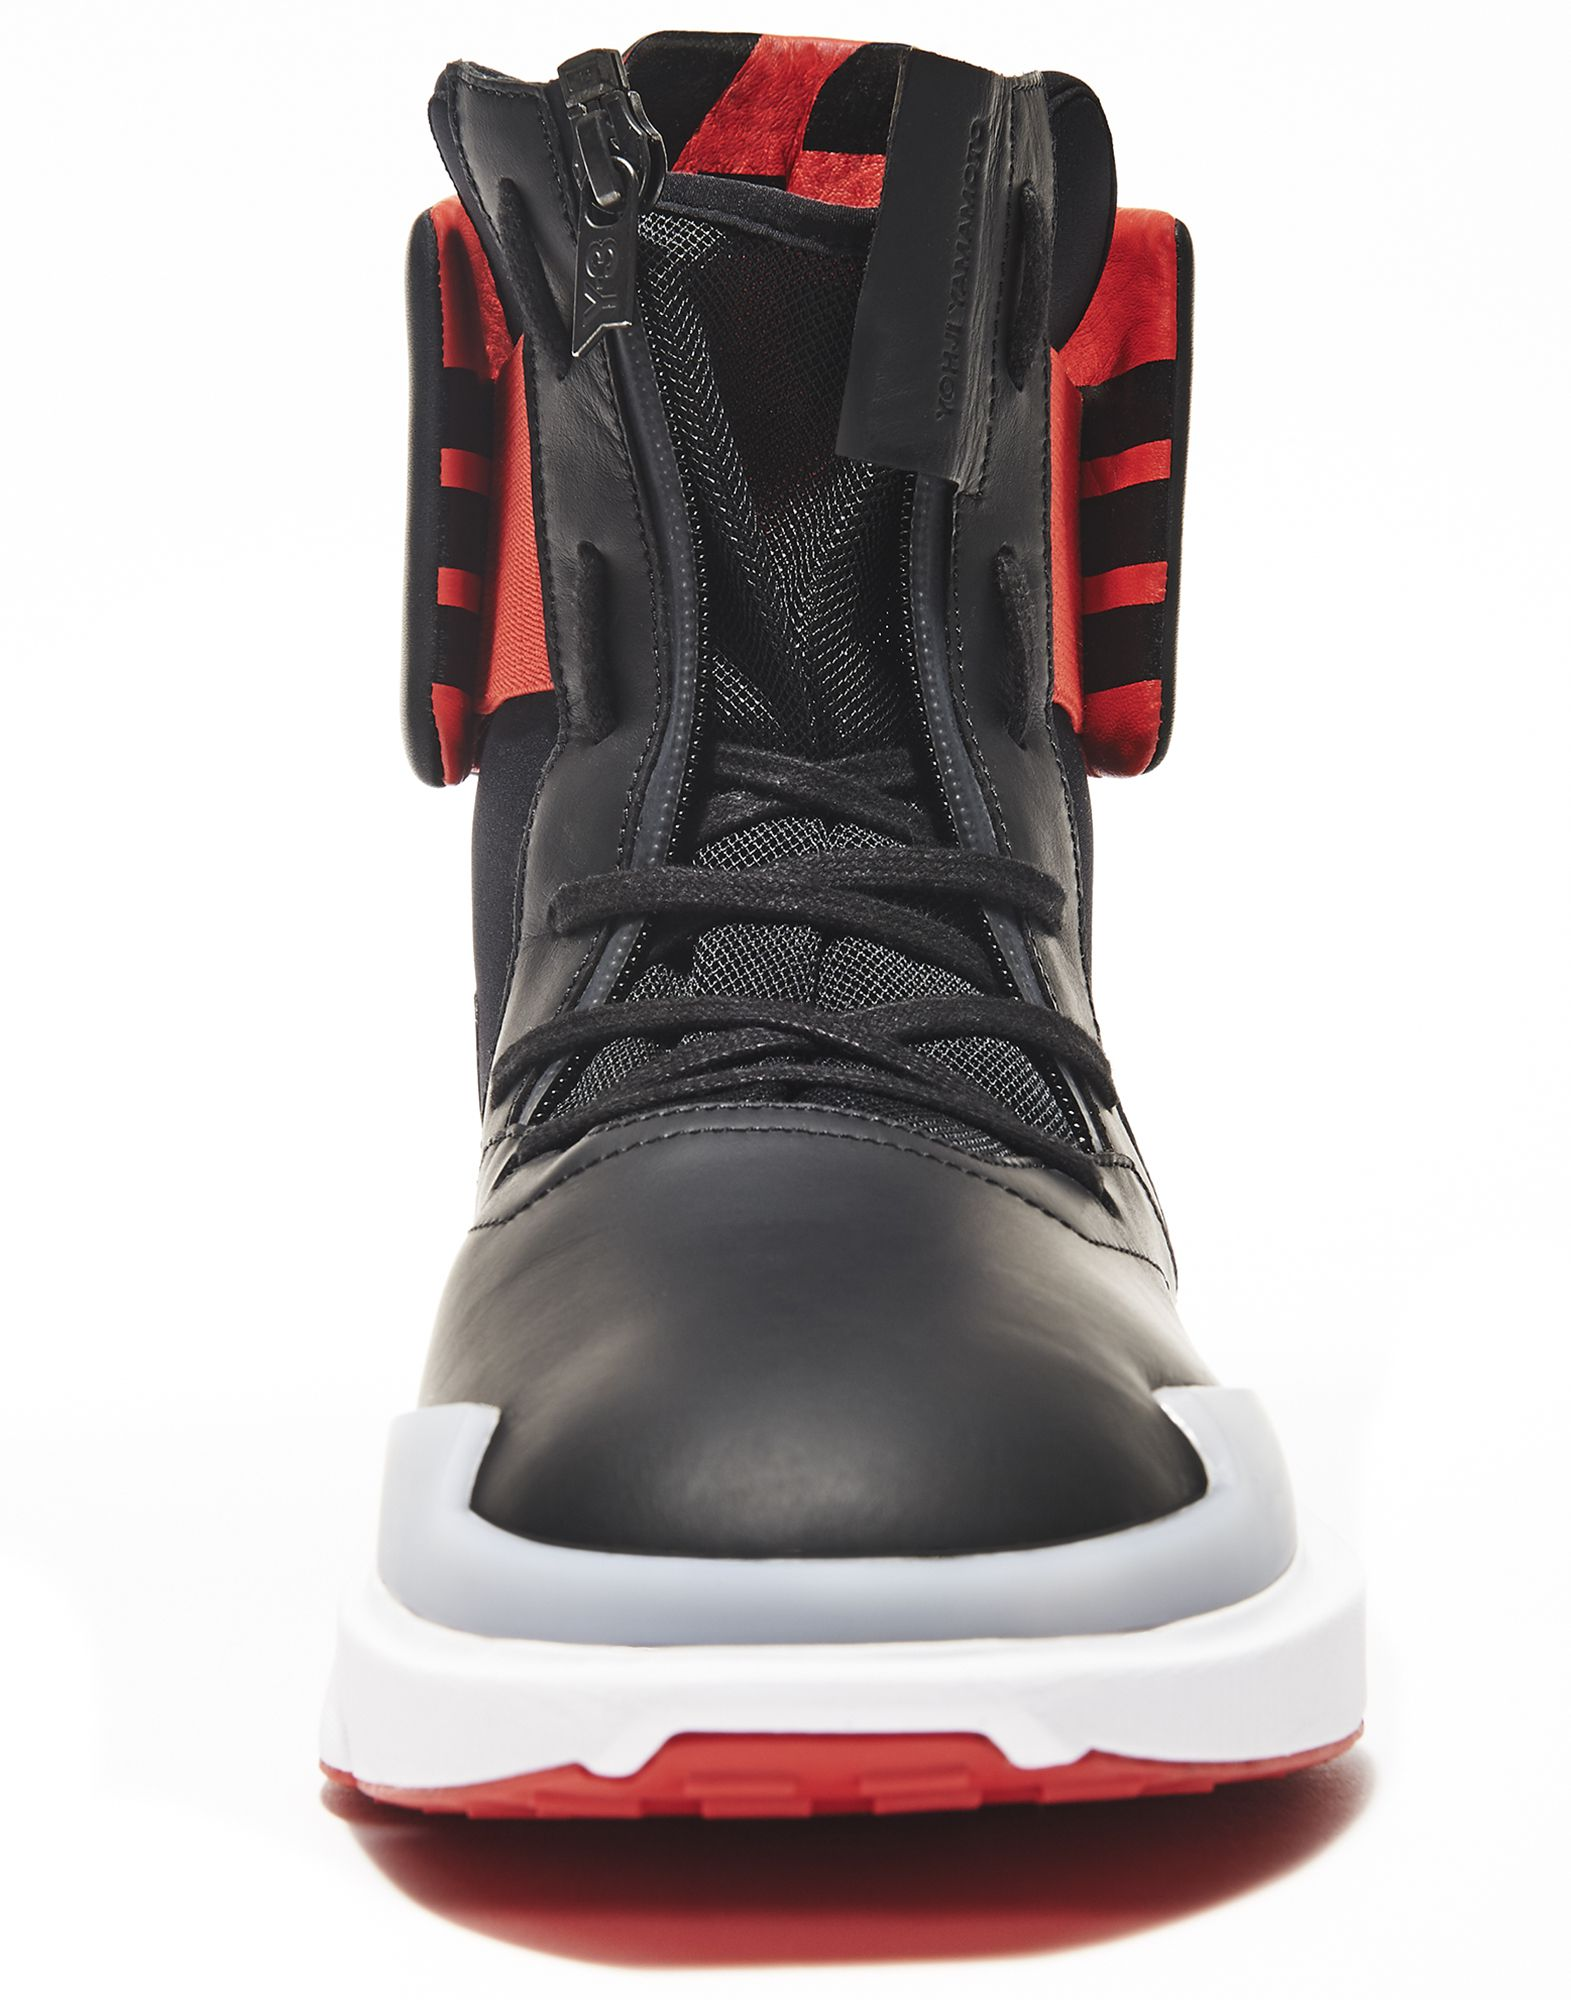 reputable site 39566 0dafd Noci 0003 Sneakers | Adidas Y-3 Official Site